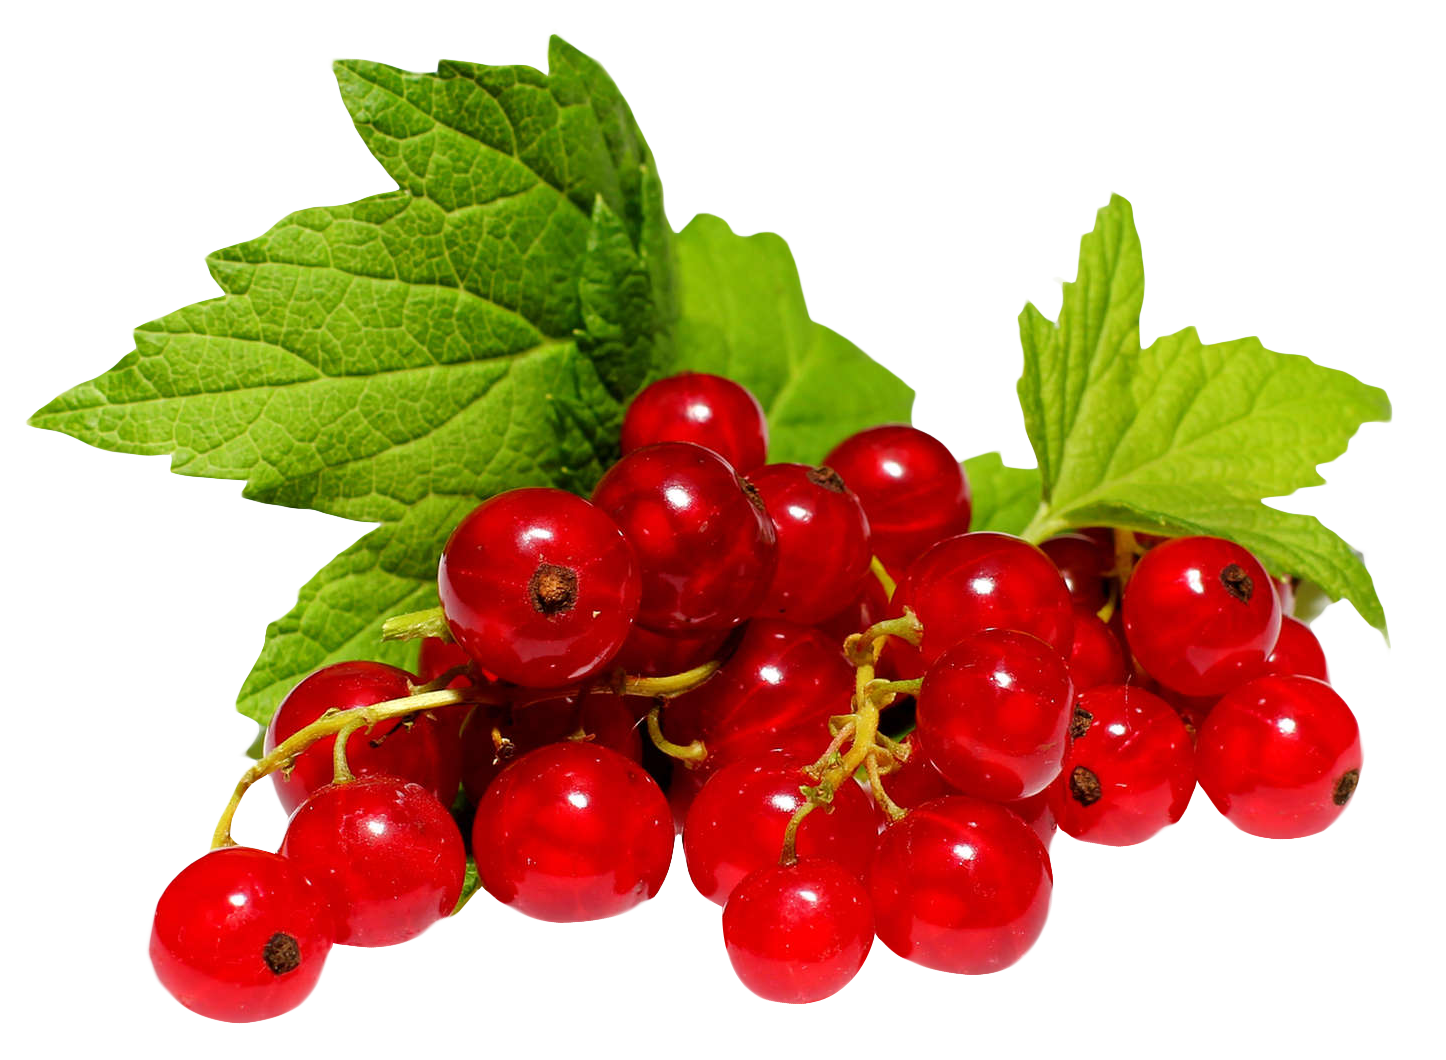 Redcurrant PNG Image